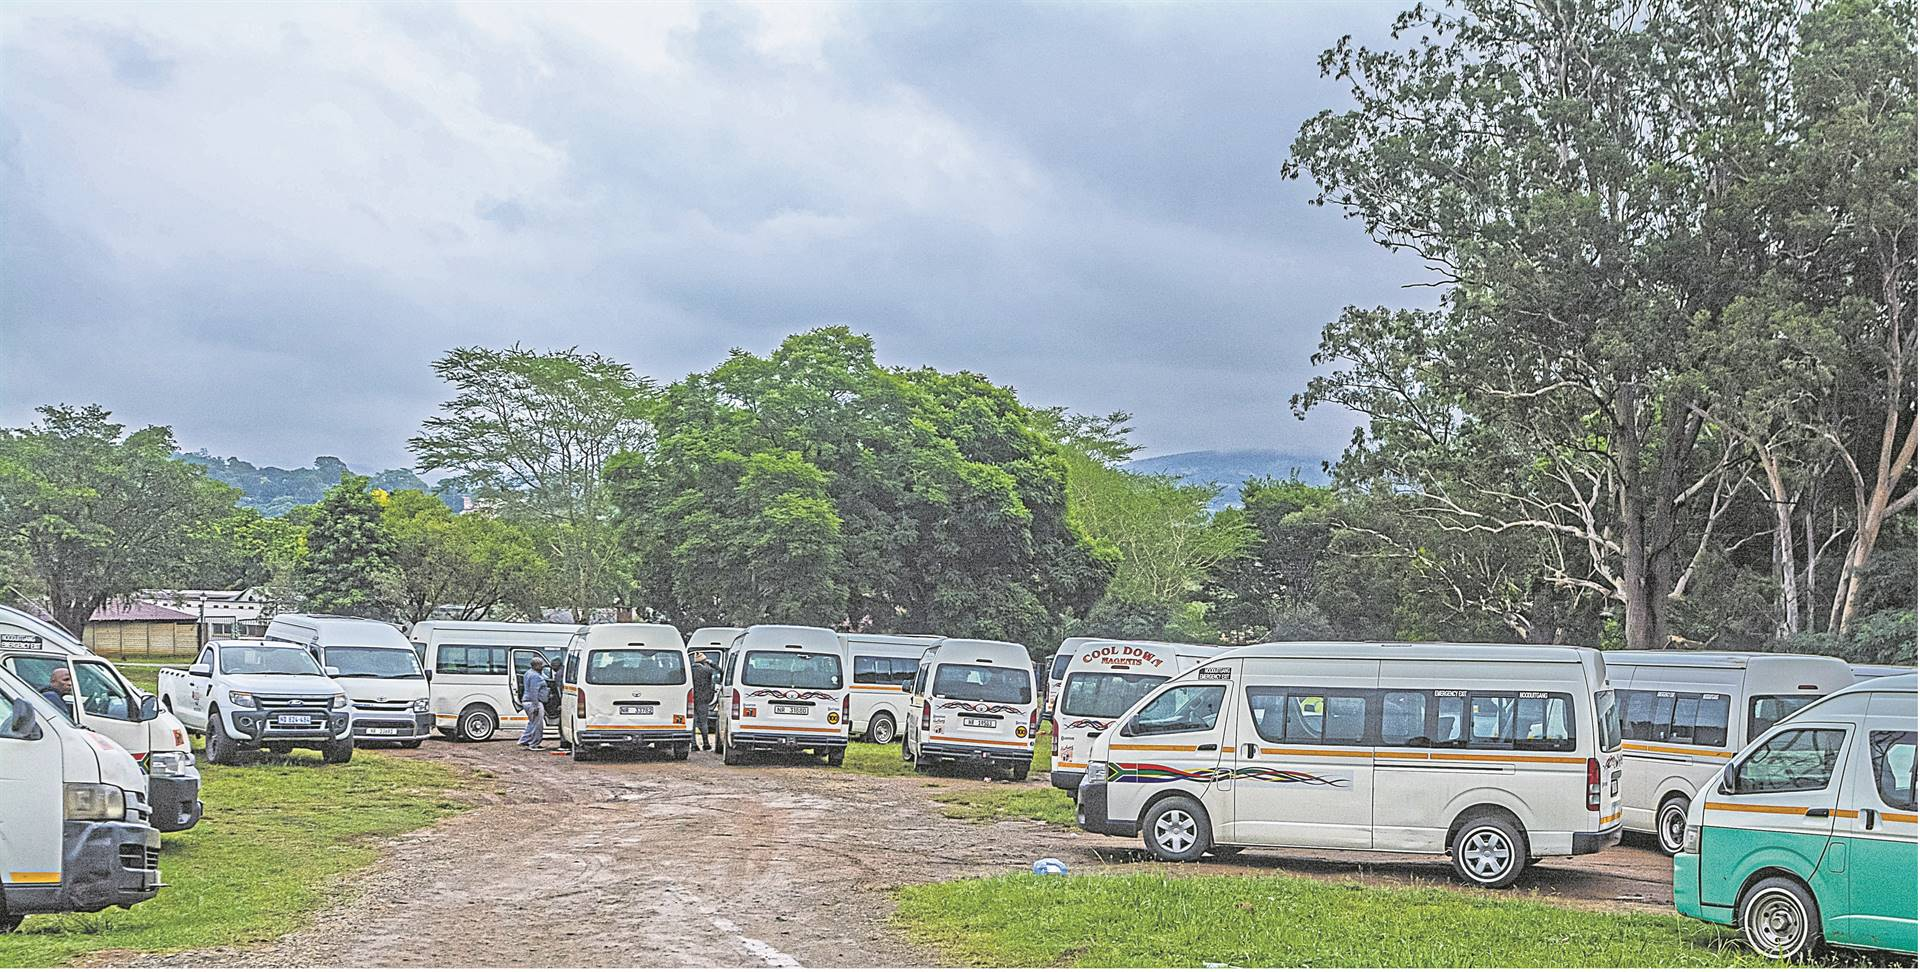 Howick taxi association drivers waited at the Alexandra Park on Thursday while officials met at the Road Traffic Inspectorate offices to discuss a way forward over the recent taxi route dispute.